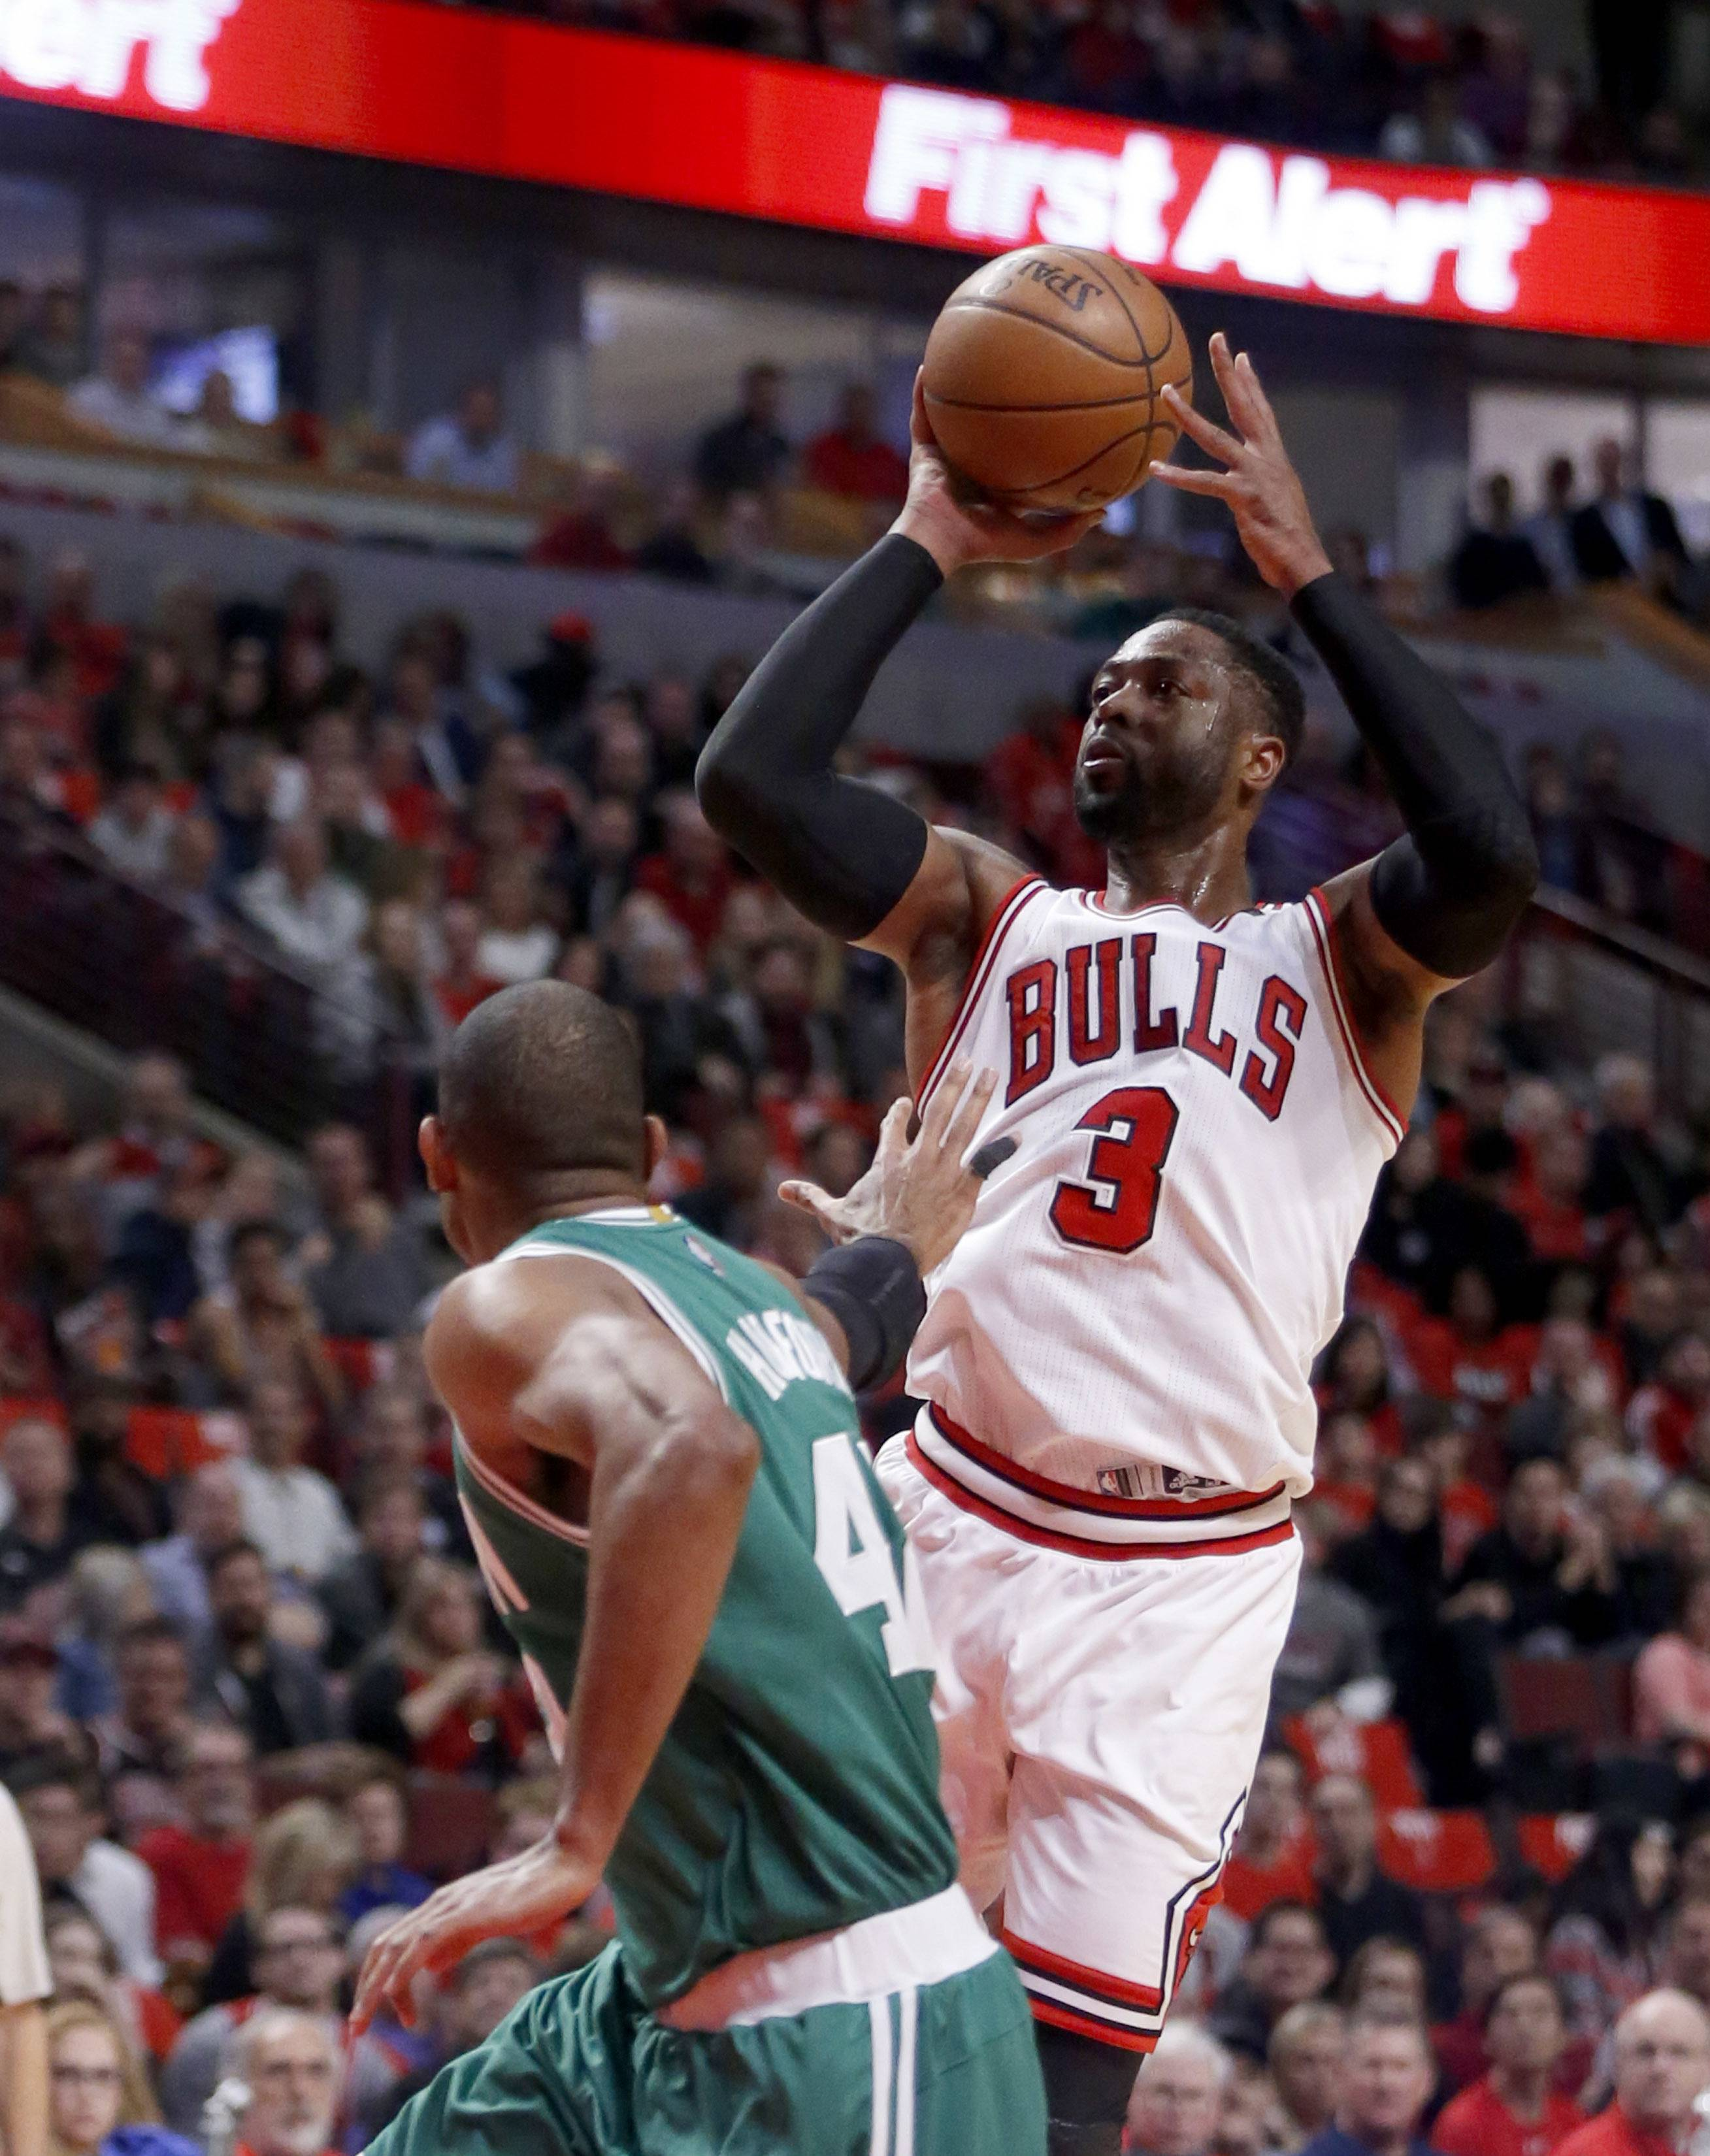 Chicago Bulls' Dwyane Wade (3) shoots over Boston Celtics' Al Horford during the first quarter of Game 3 of a first-round NBA basketball playoff series in Chicago, Friday, April 21, 2017. (AP Photo/Charles Rex Arbogast)